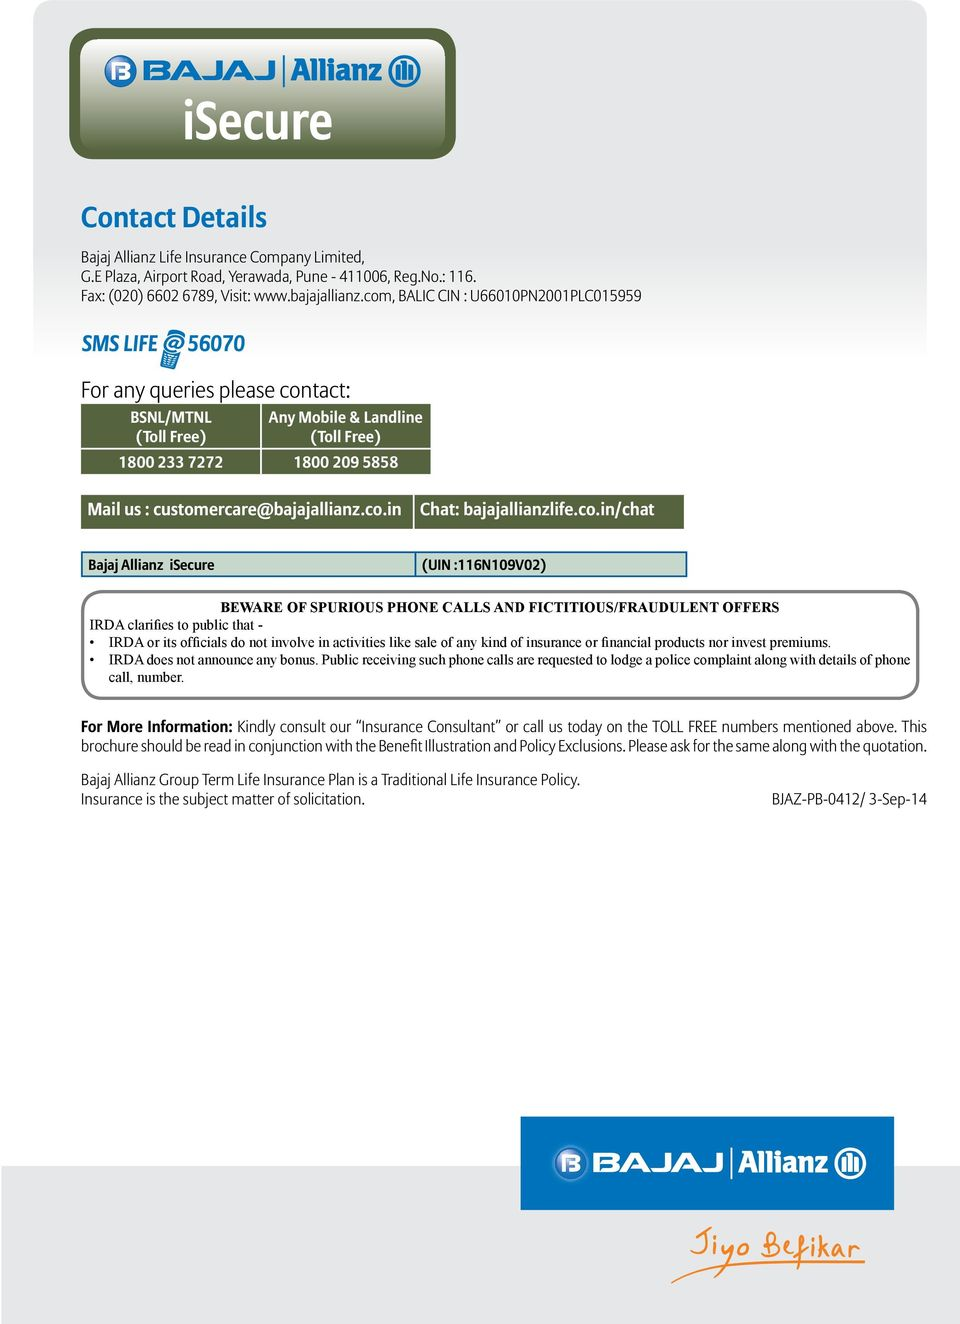 co.in/chat Bajaj Allianz isecure (UIN :116N109V02) BEWARE OF SPURIOUS PHONE CALLS AND FICTITIOUS/FRAUDULENT OFFERS IRDA clarifies to public that - IRDA or its officials do not involve in activities